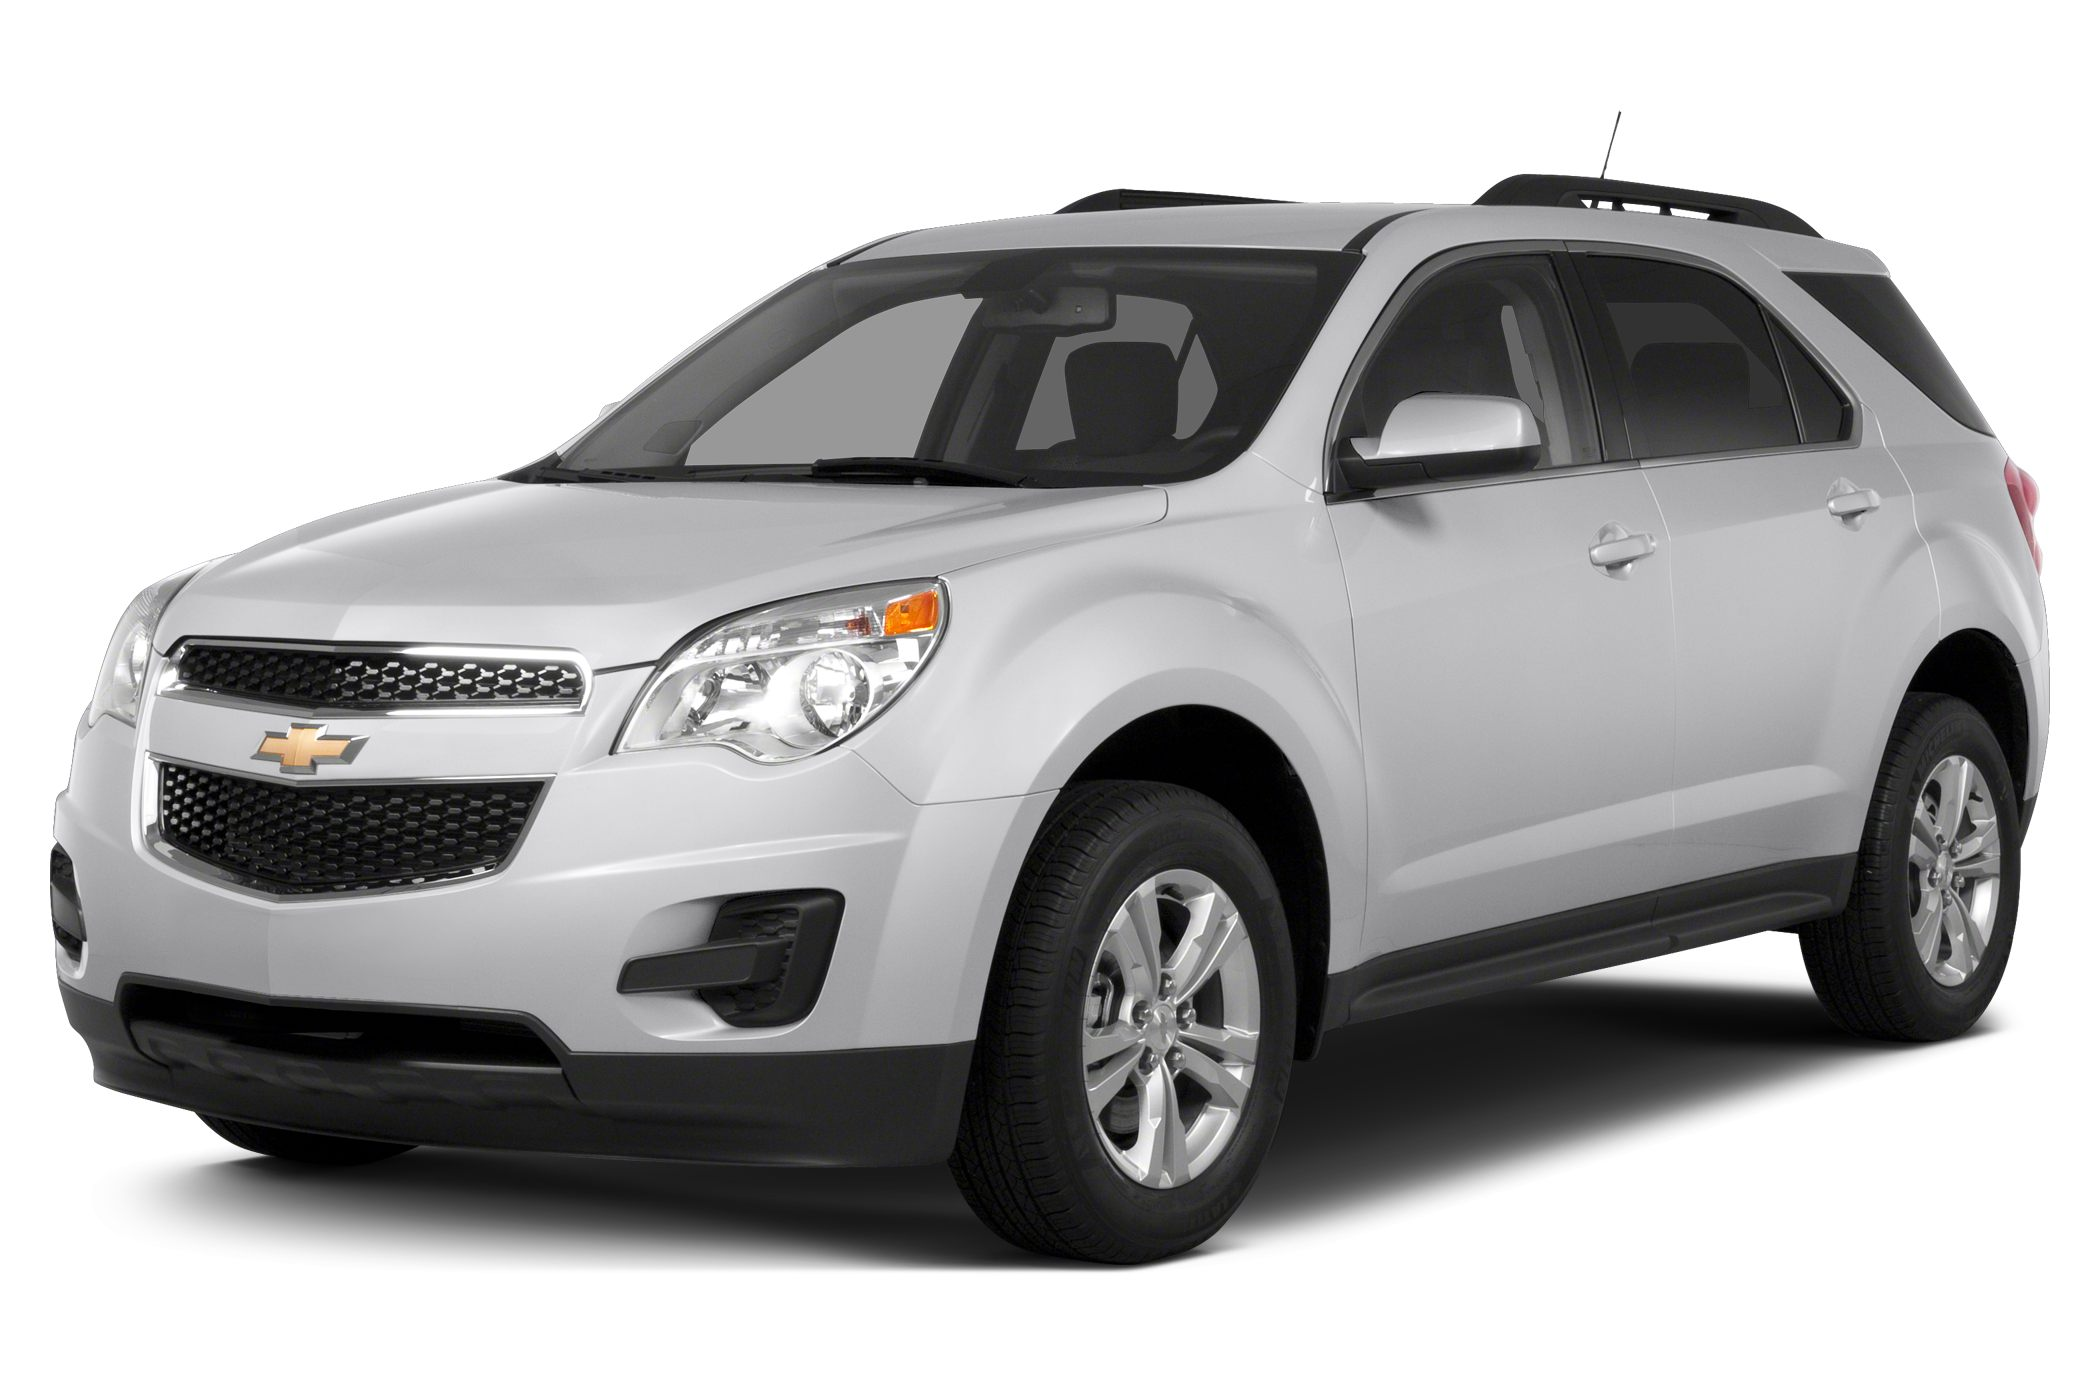 2015 Chevrolet Equinox 1LT SUV for sale in Stillwater for $27,150 with 43 miles